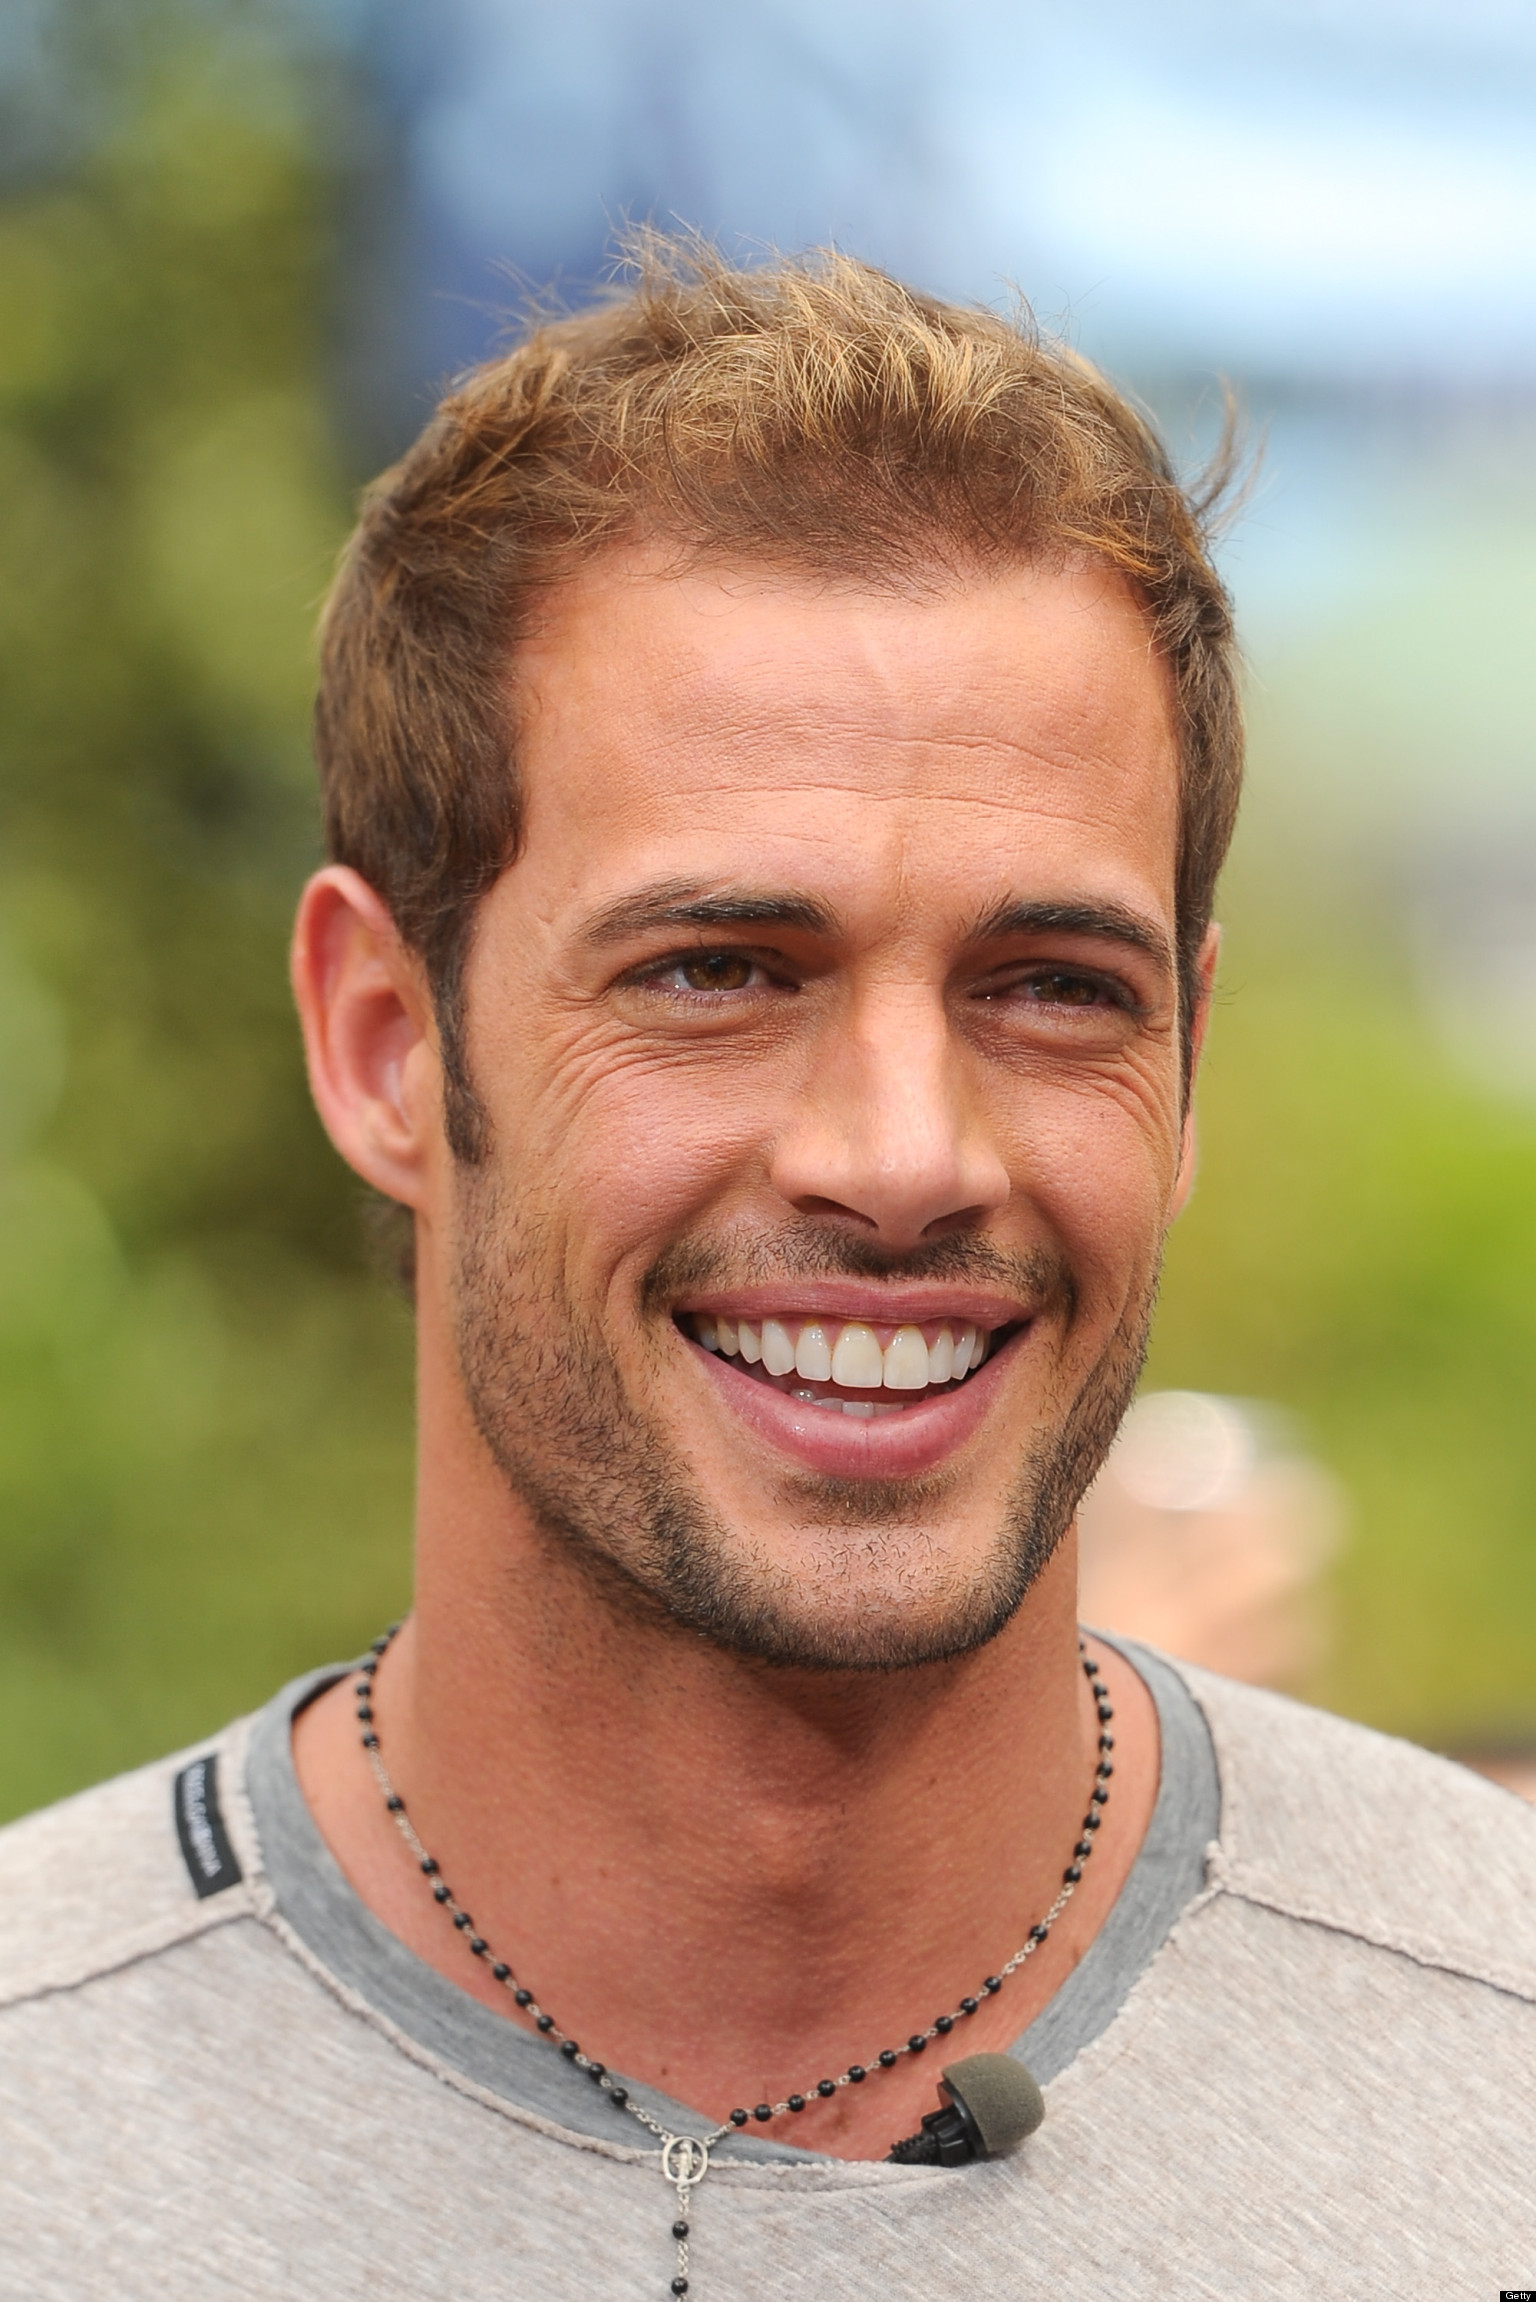 william levy movieswilliam levy instagram, william levy 2017, william levy wikipedia, william levy vk, william levy elizabeth gutierrez, william levy wife, william levy film, william levy filme, william levy seriali, william levy фильмы, william levy y elizabeth gutierrez, william levy wiki, william levy filmi, william levy facebook, william levy serialebi, william levy movies, william levy age, william levy telenowele, william levy dancing with the stars, william levy telenovele